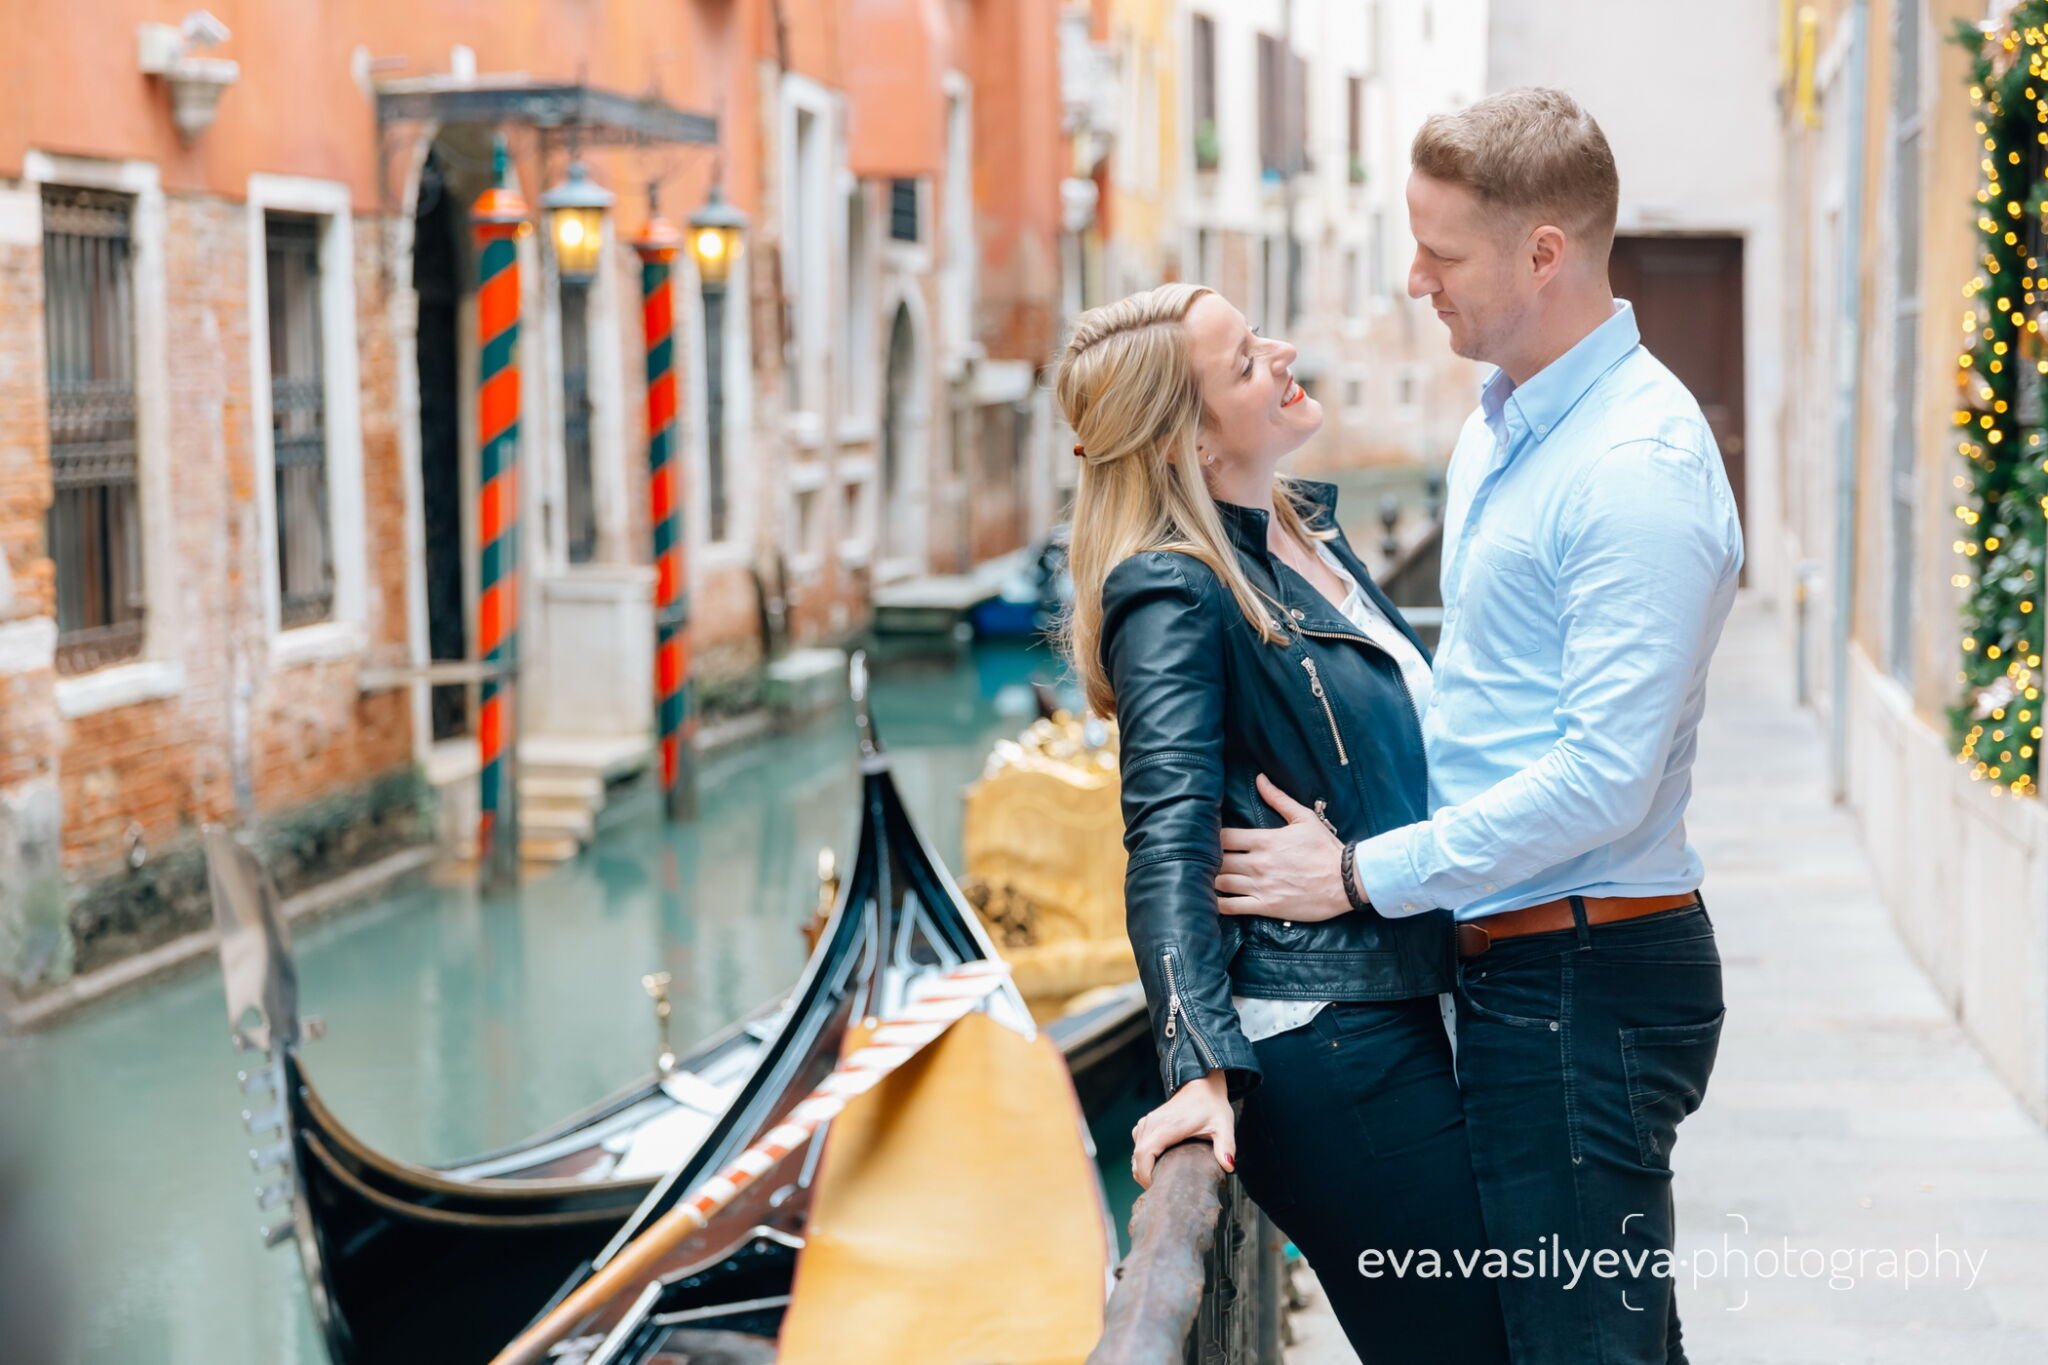 Engagement photoshoot photographer in Venice